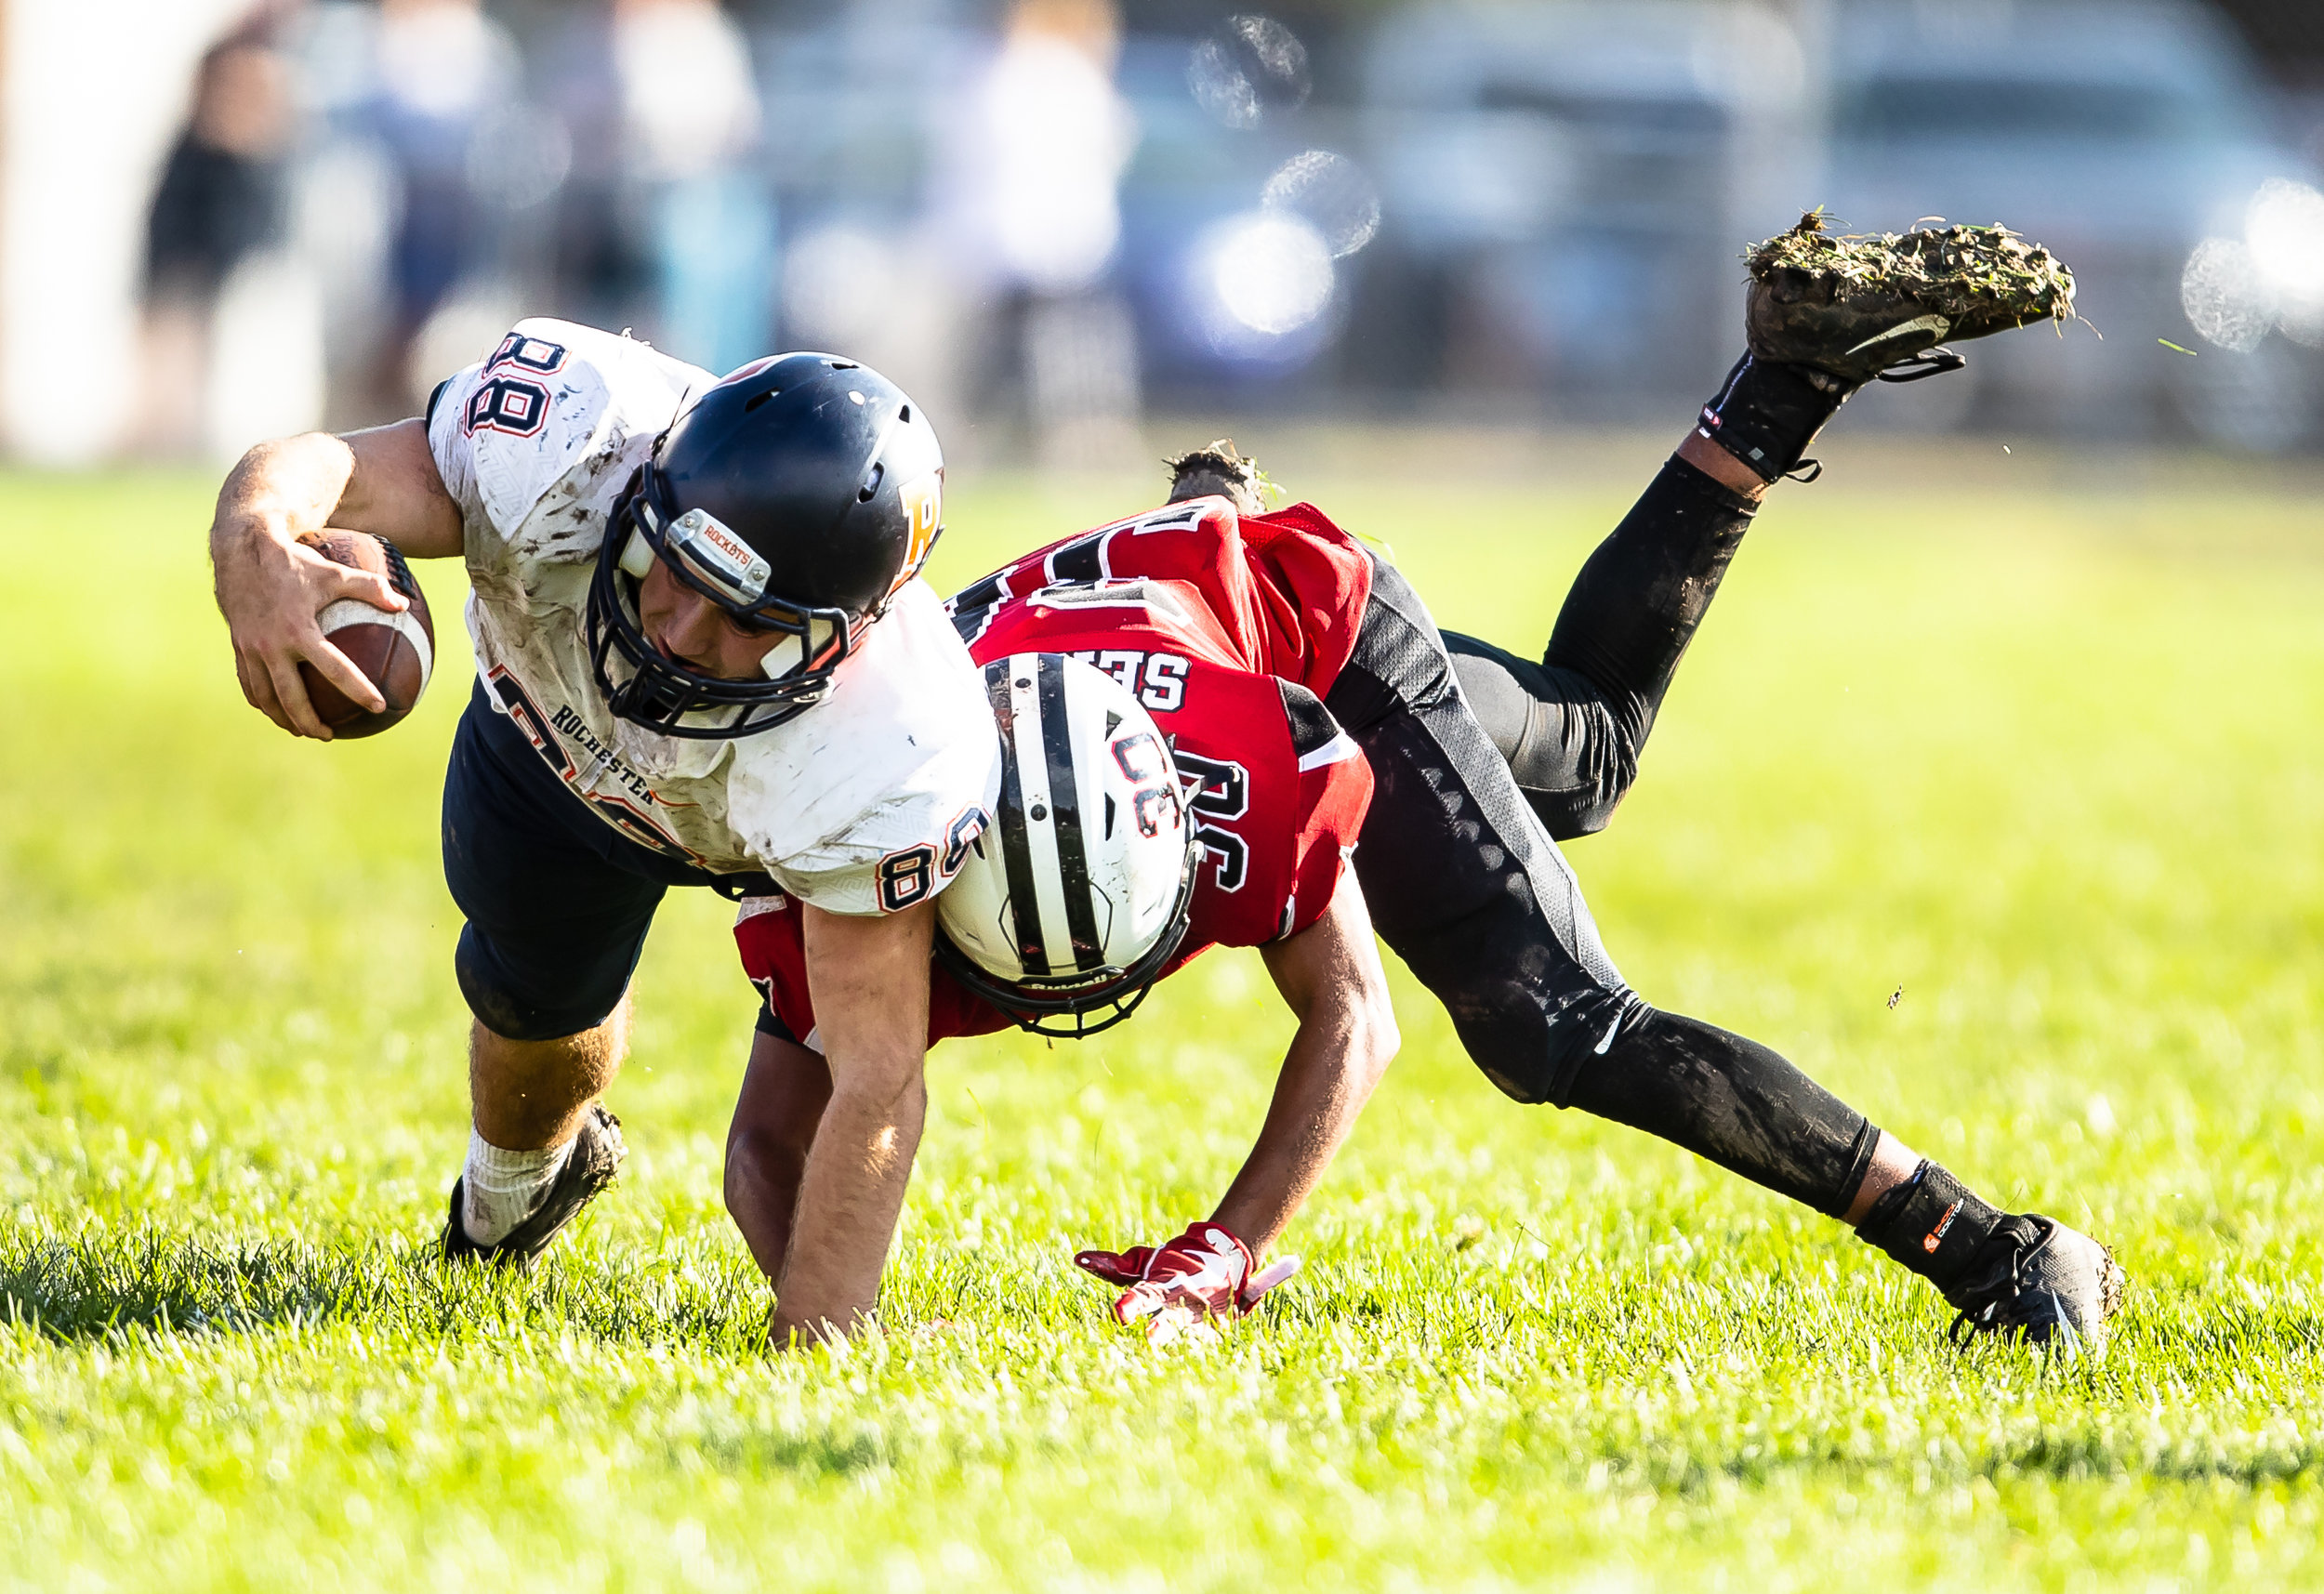 Rochester's Clay Alewelt (88) tries to stretch out for more yardage after being hit by Springfield's Qa'ron Hawkins (30) after a catch in the open field in the second half at Memorial Stadium, Saturday, Oct. 6, 2018, in Springfield, Ill. [Justin L. Fowler/The State Journal-Register]